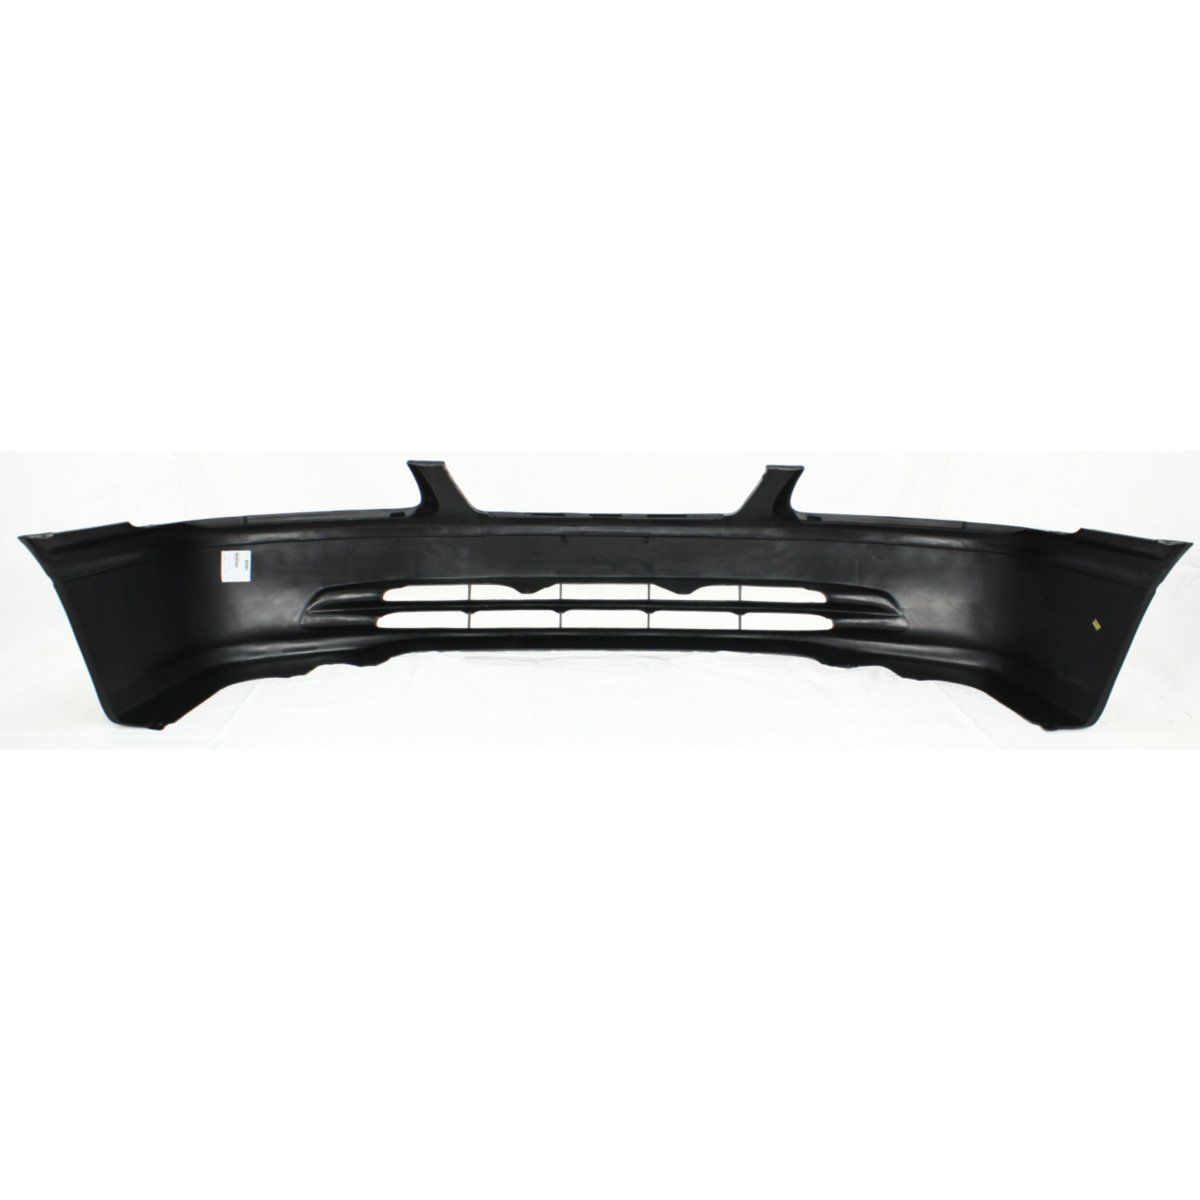 2000-2001 TOYOTA CAMRY Front Bumper Cover Painted to Match